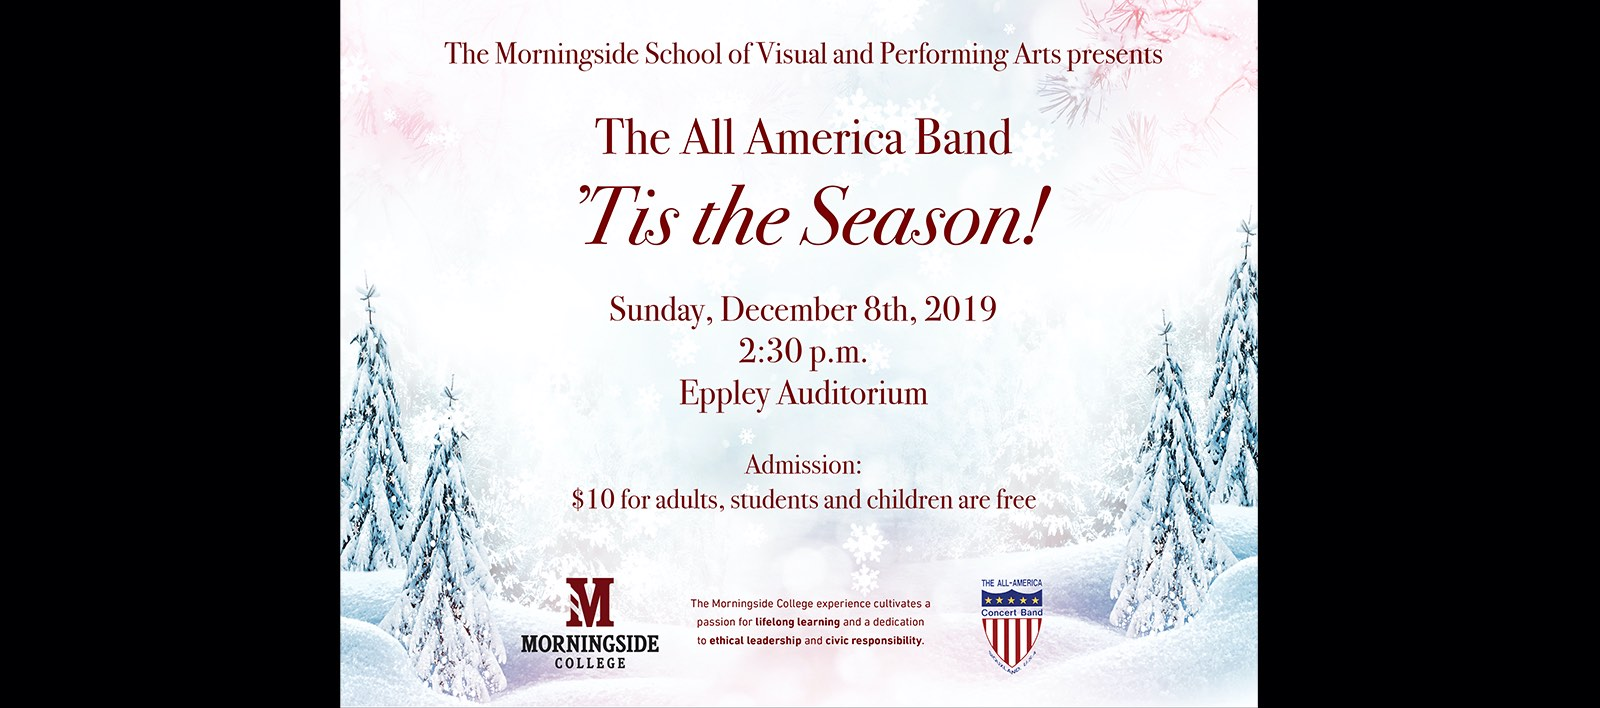 All America Band holiday concert poster